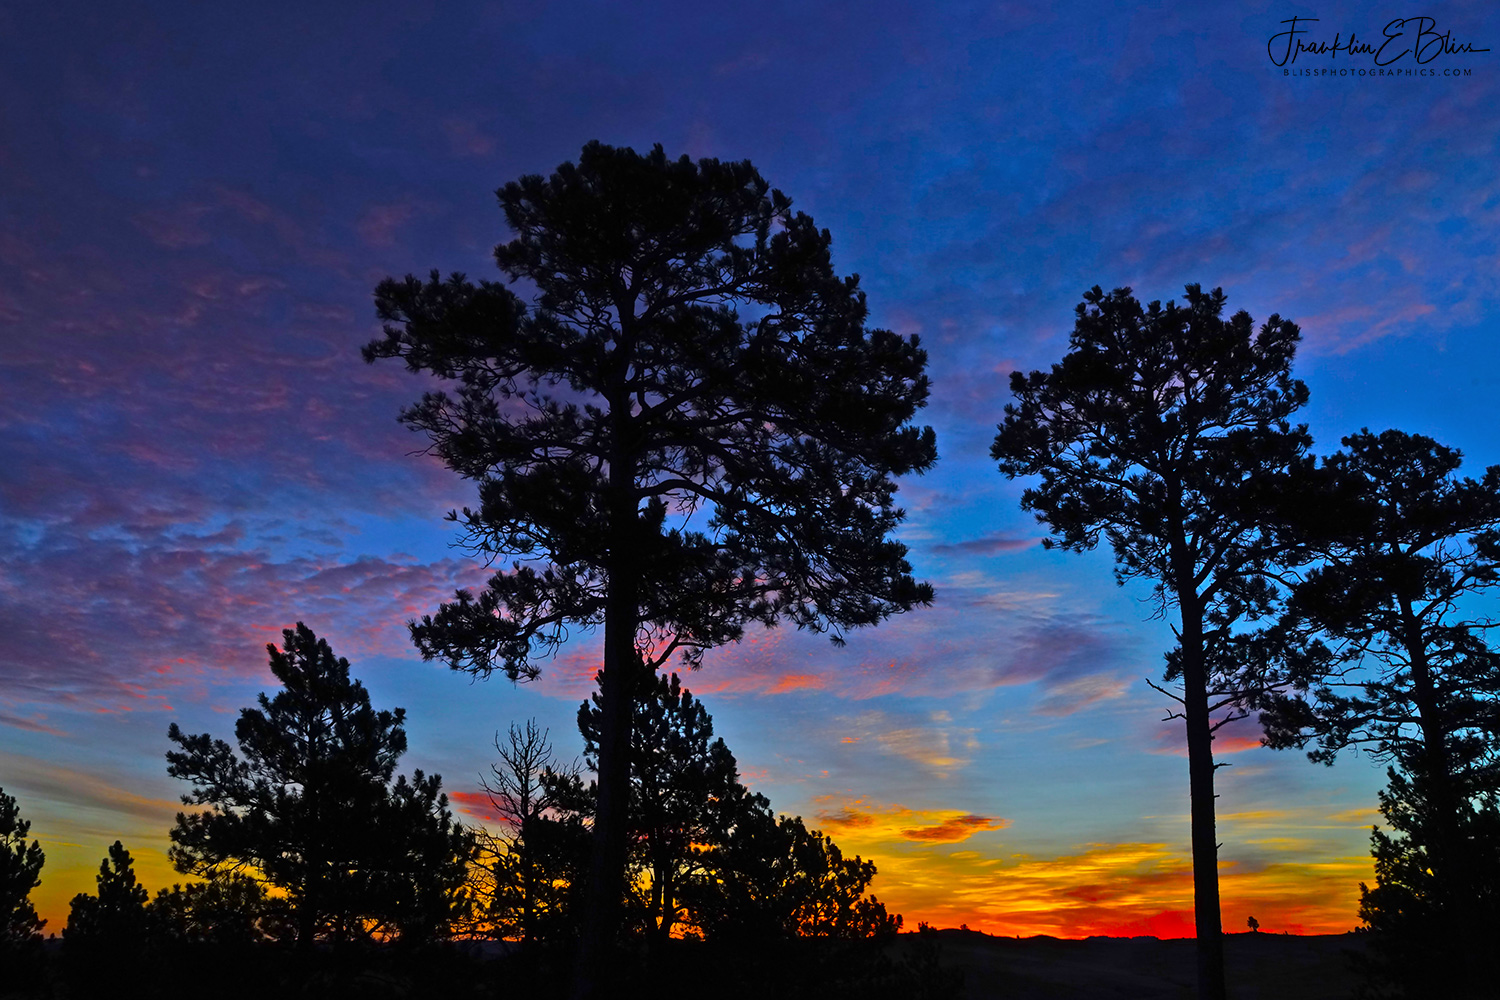 Backcountry Sunrise with the Big Jack Pines